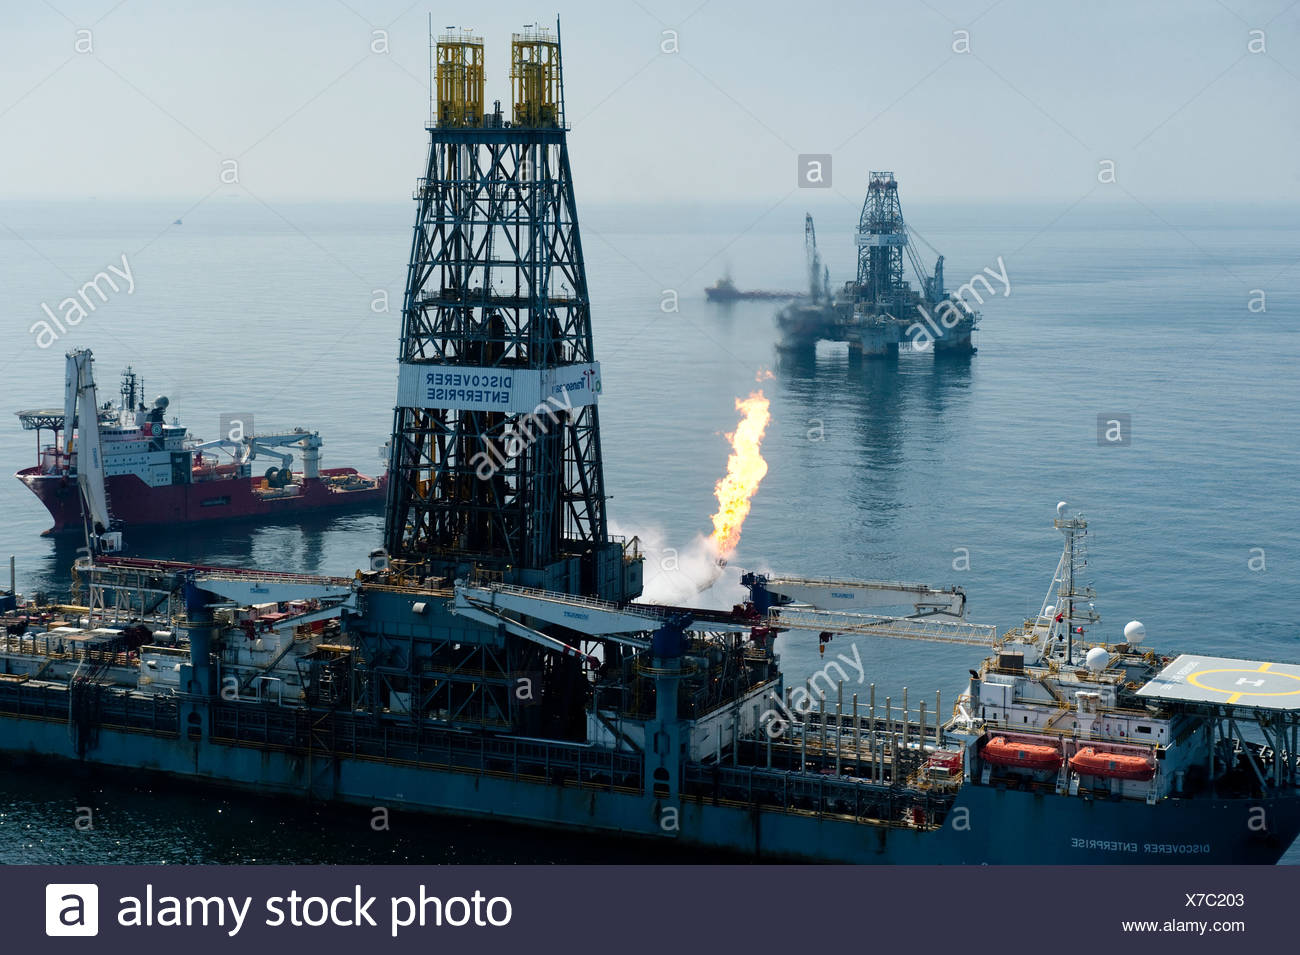 Cleanup crews near the Deepwater Horizon blowout. - Stock Image